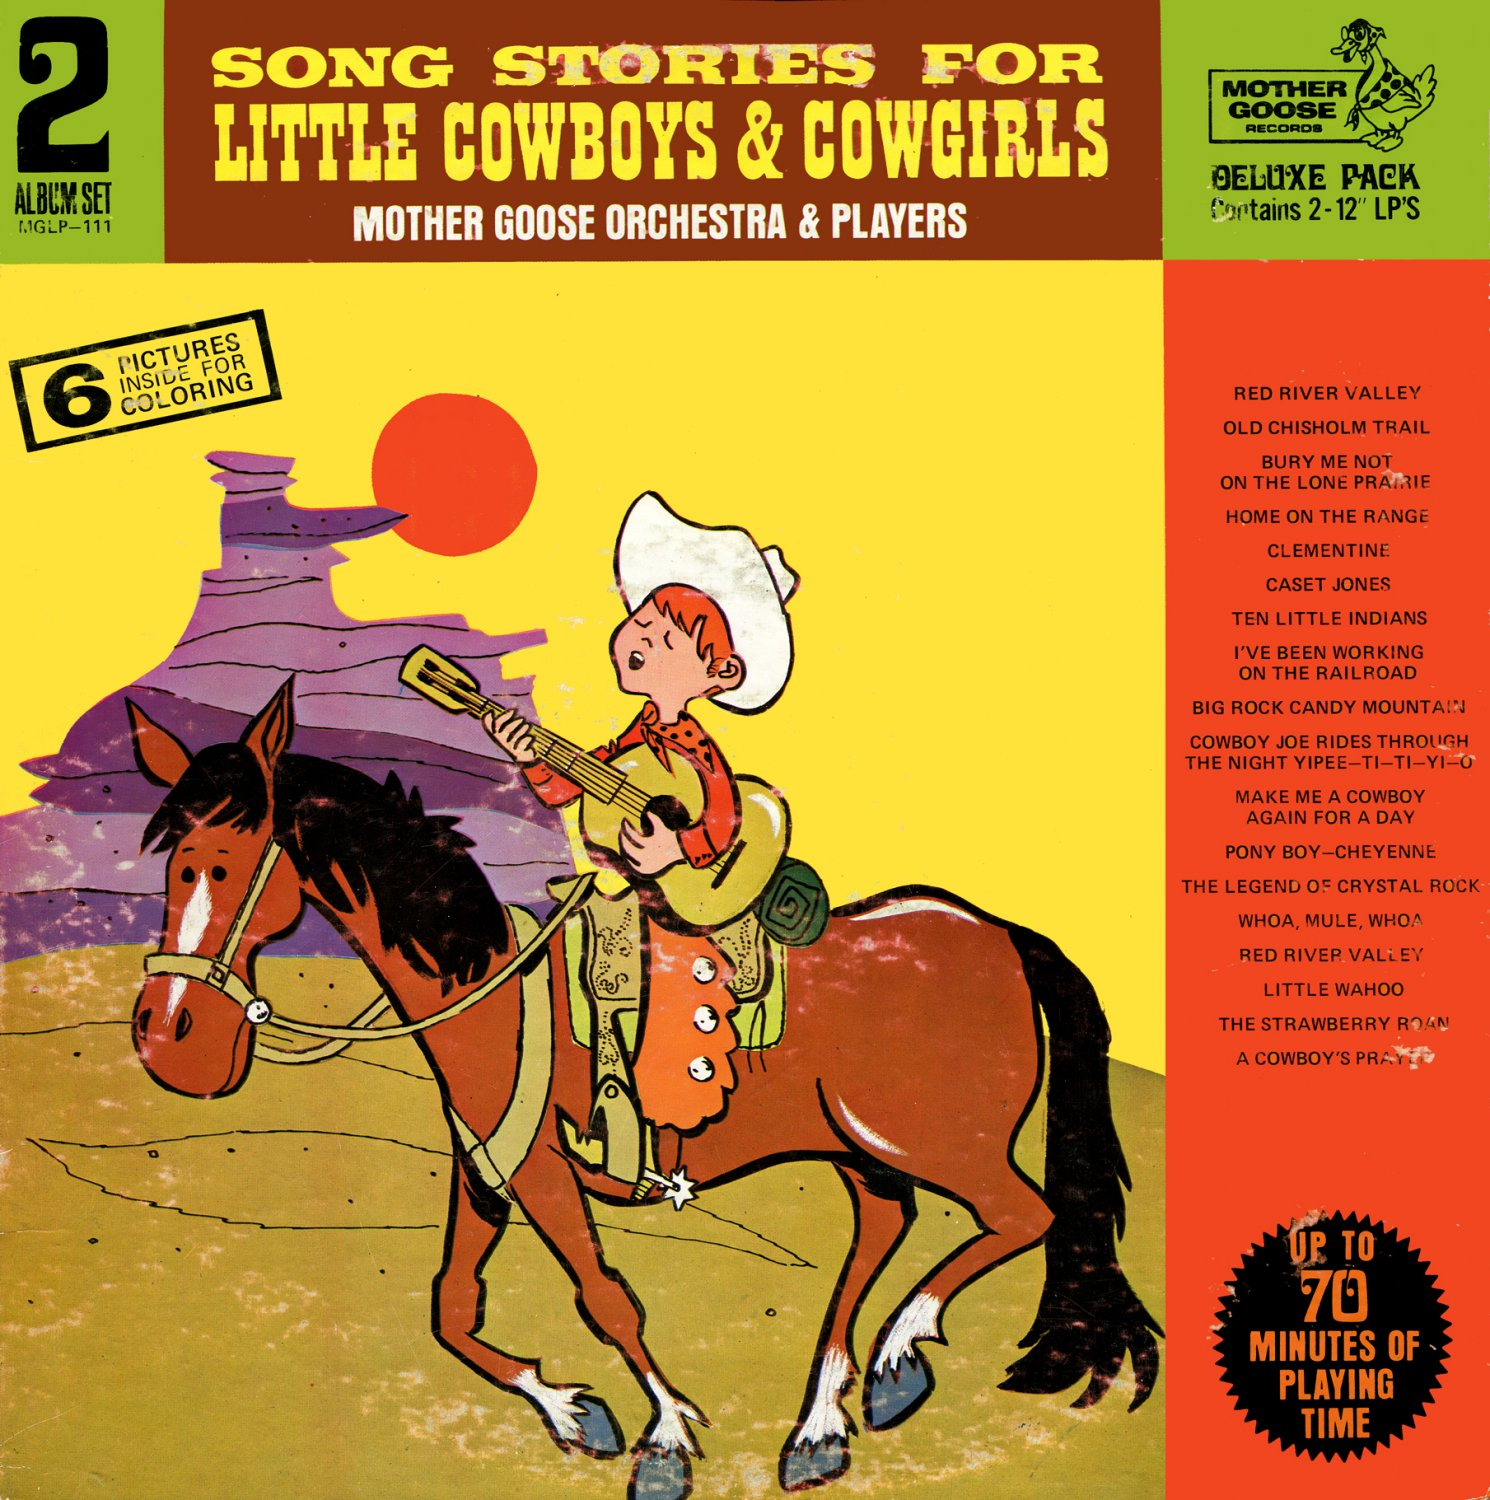 Song Stories For Little Cowboys & Cowgirls - Mother Goose Orchestra & Players LP/CD